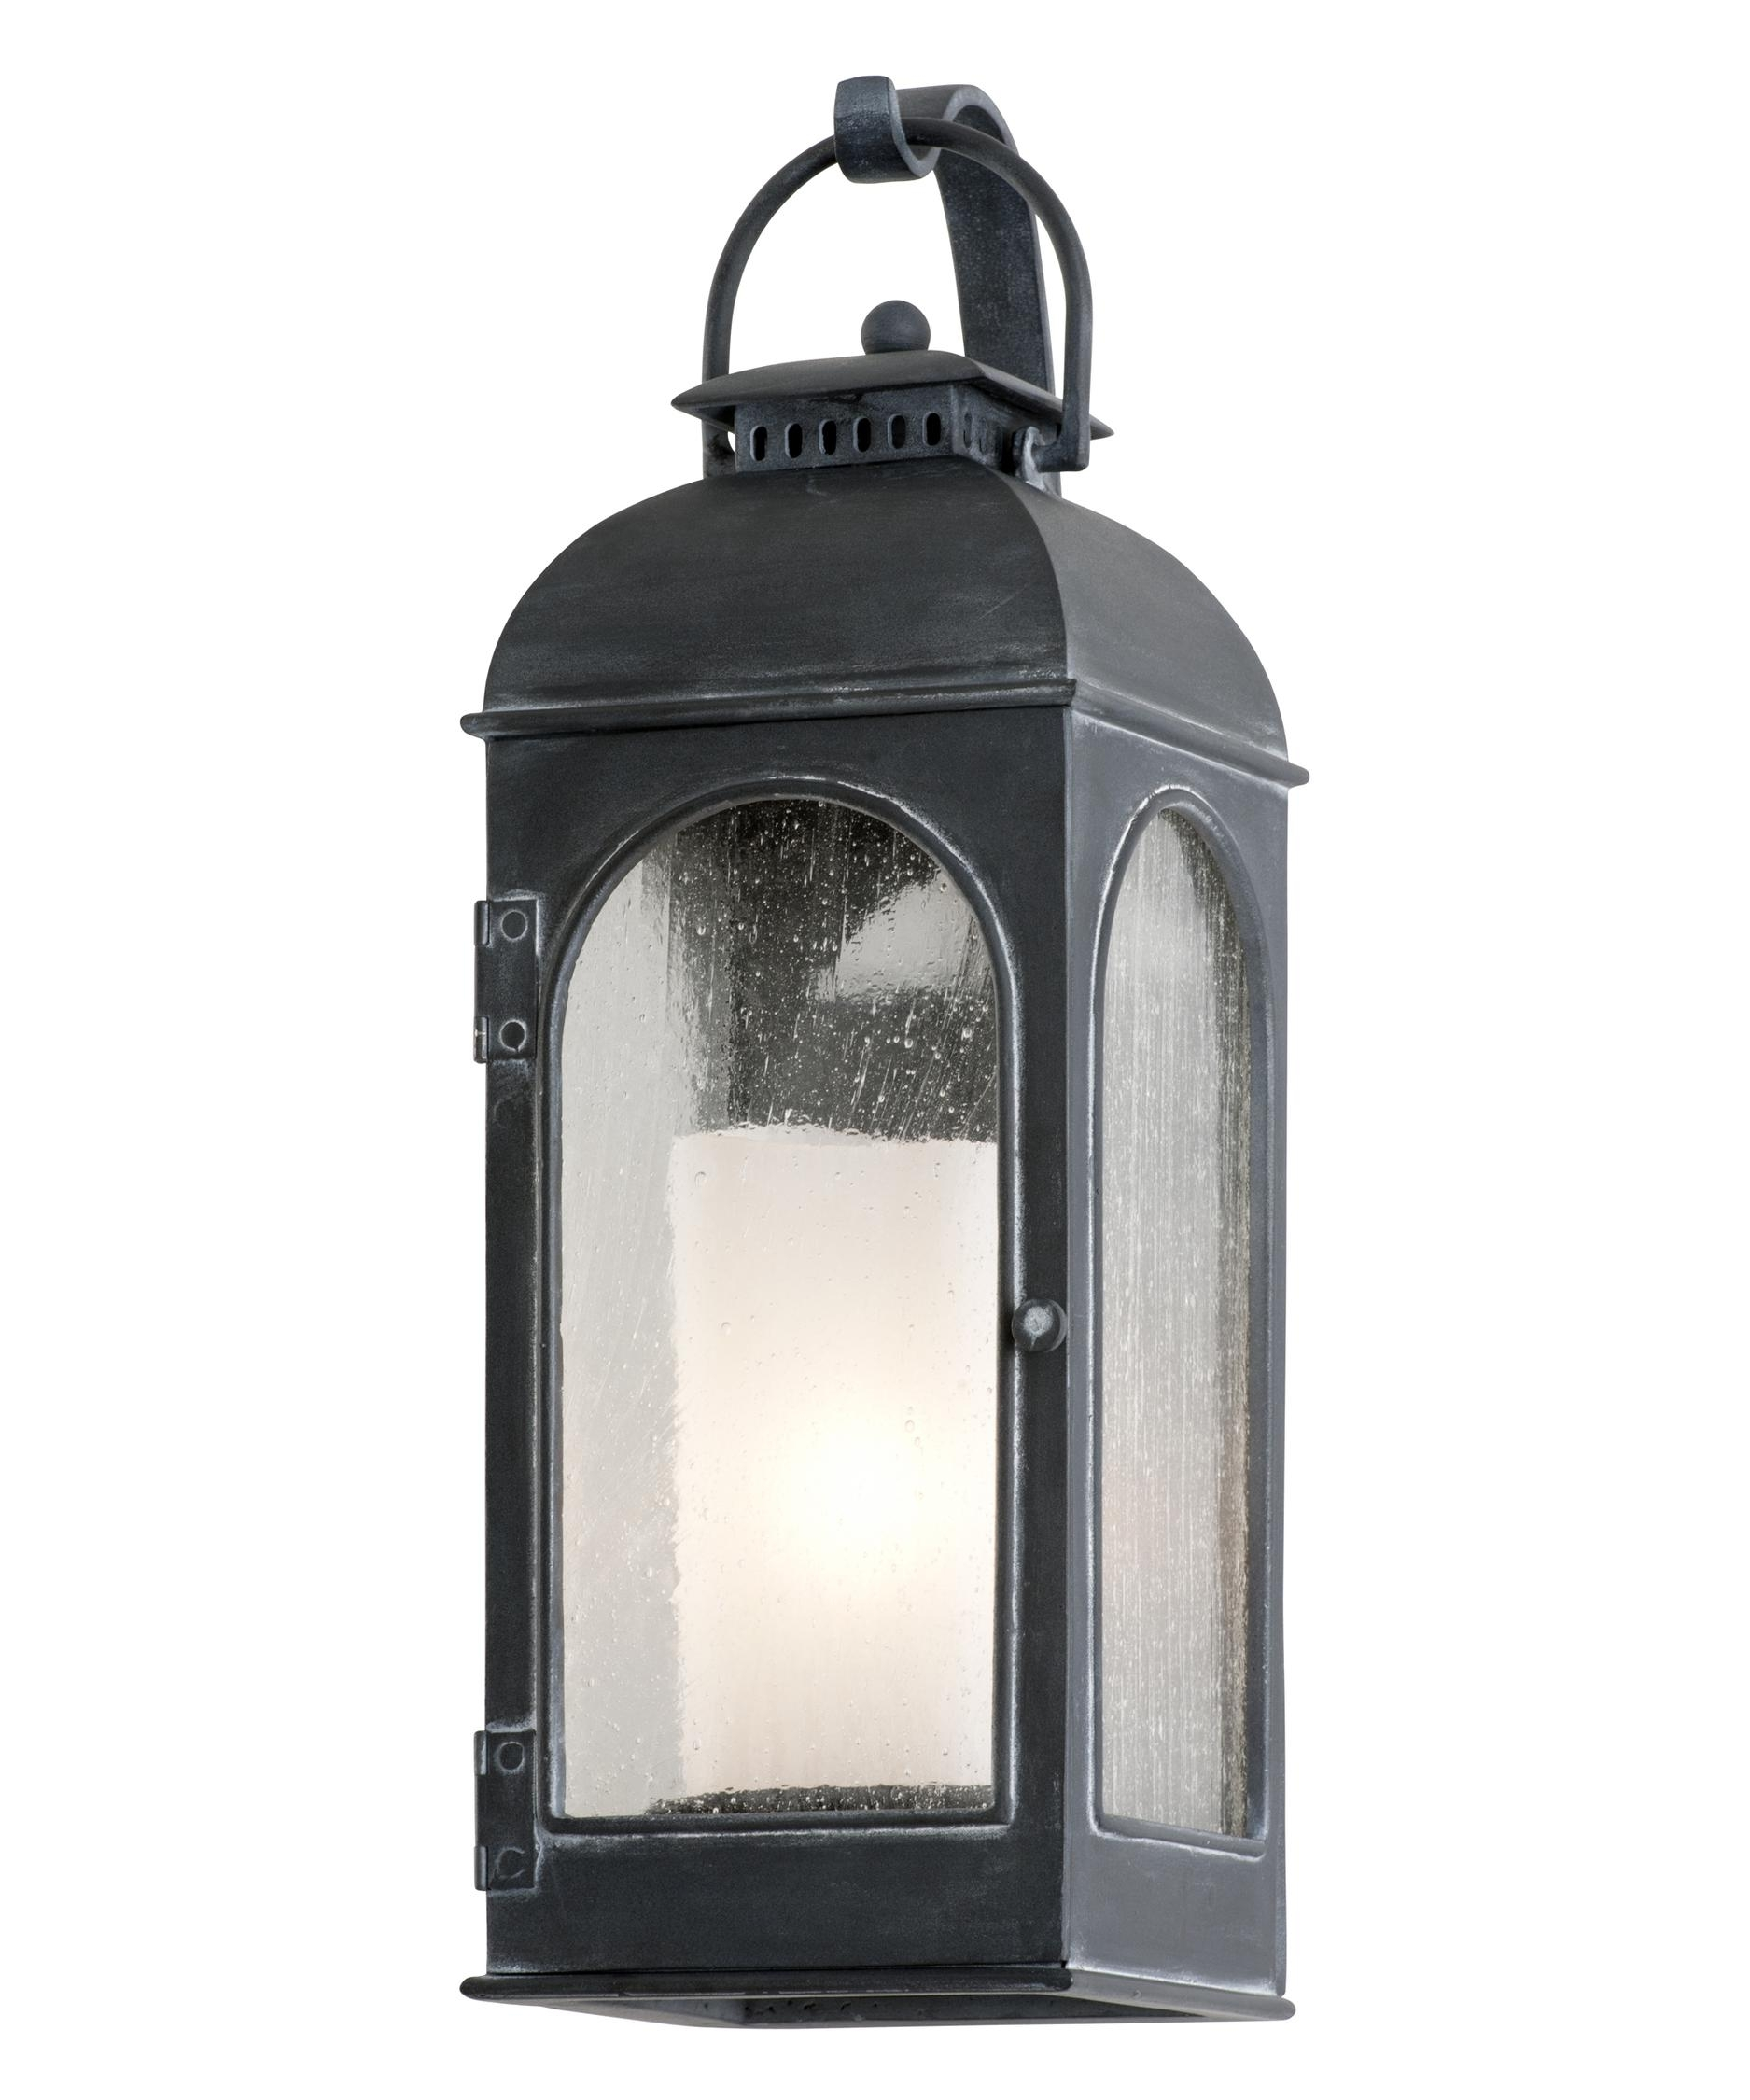 Plastic Lanterns Outdoor Lights Lightingcool Front Porch For Barn With Outdoor Lanterns For Porch (View 19 of 20)